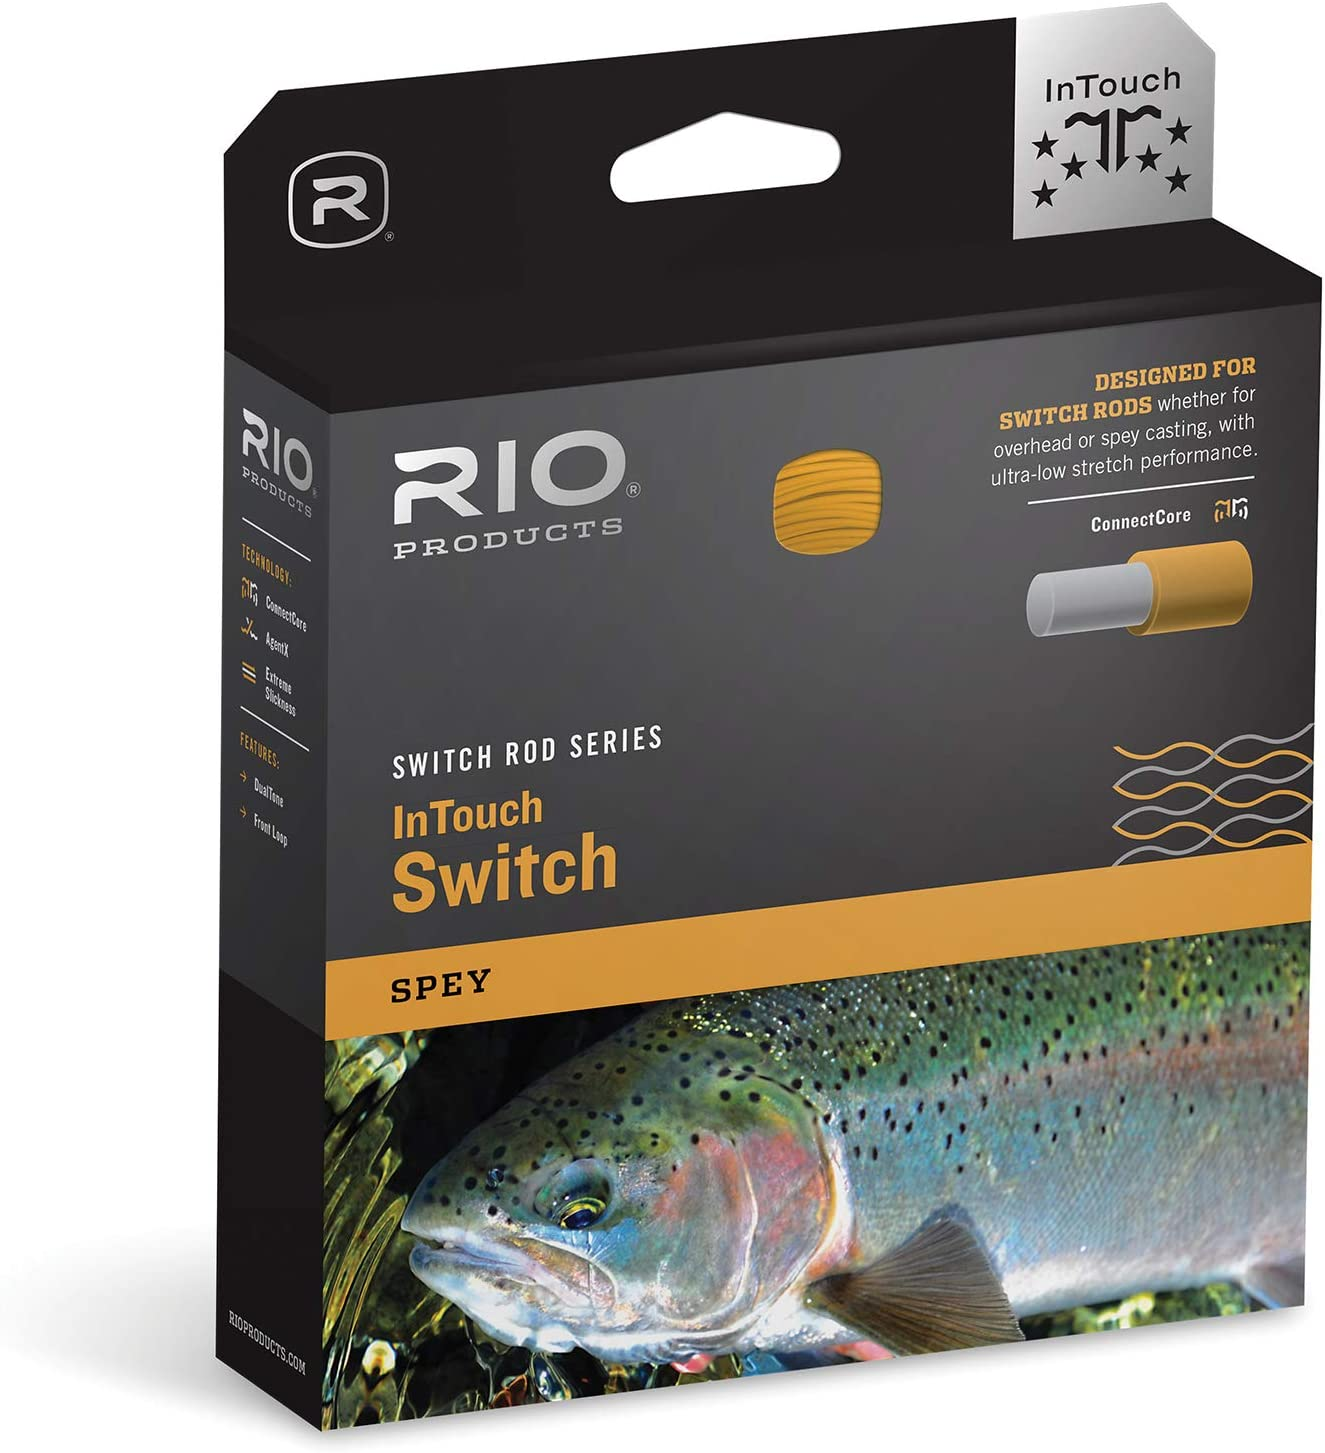 RIO Products Fly Line Intouch Switch Line 5/6F Beige/Pale Green, Beige-Pale-Green